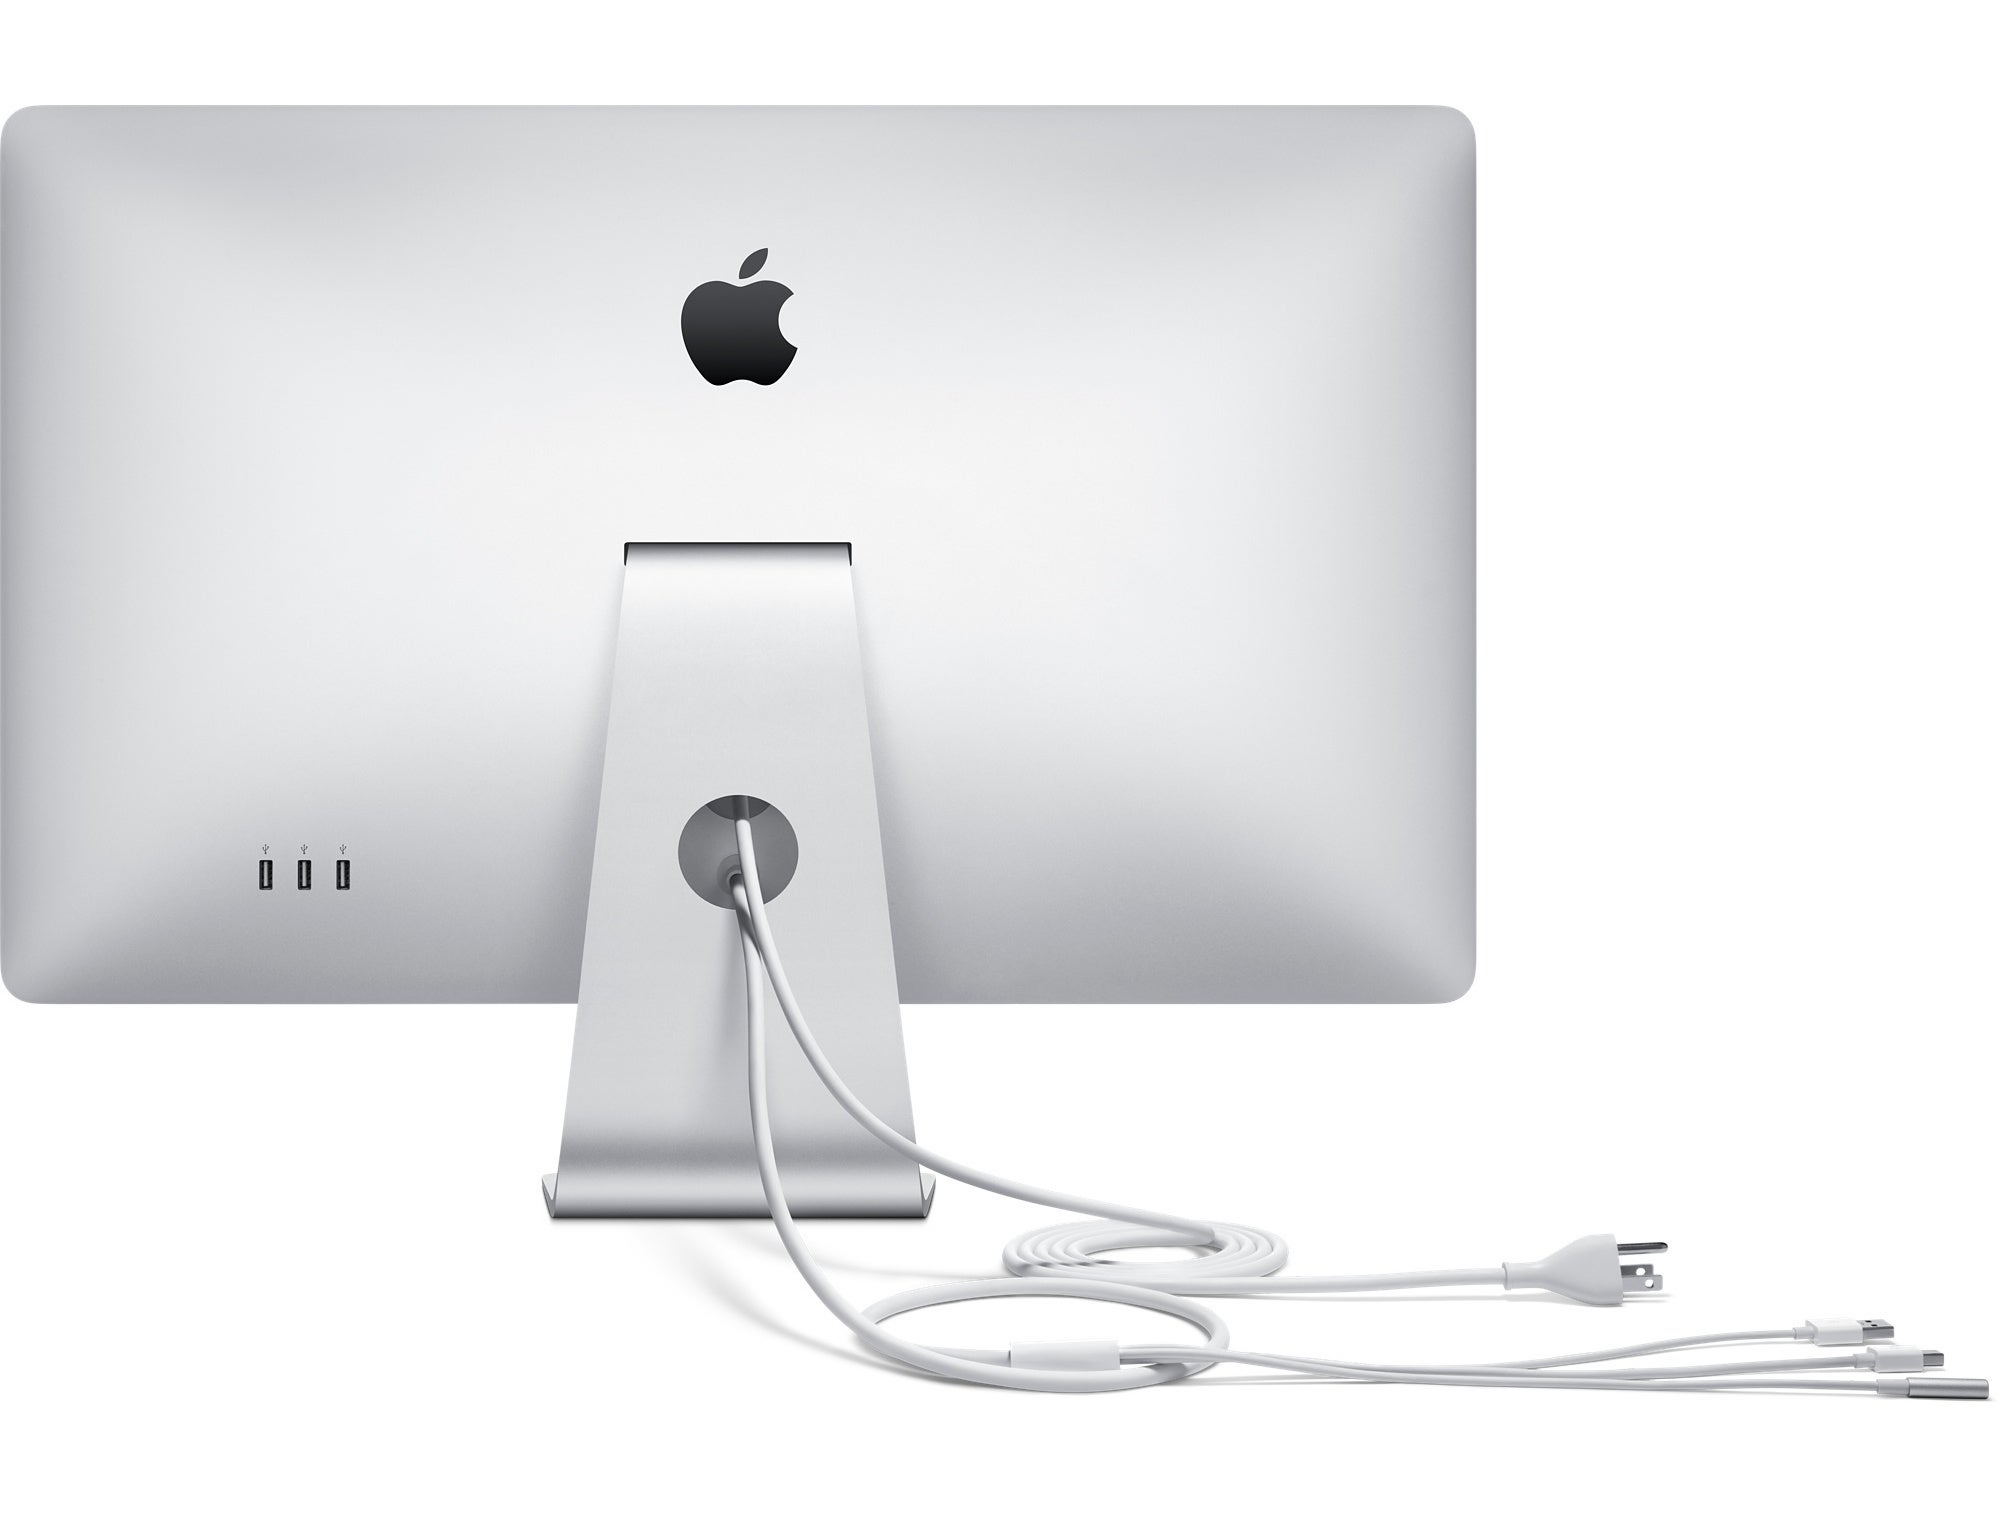 Connecting An Apple Led Cinema Display To A Usb C Macbook Or Mac Mini Mic Jack Wiring Pro Here Are The Adapters You Need Macworld